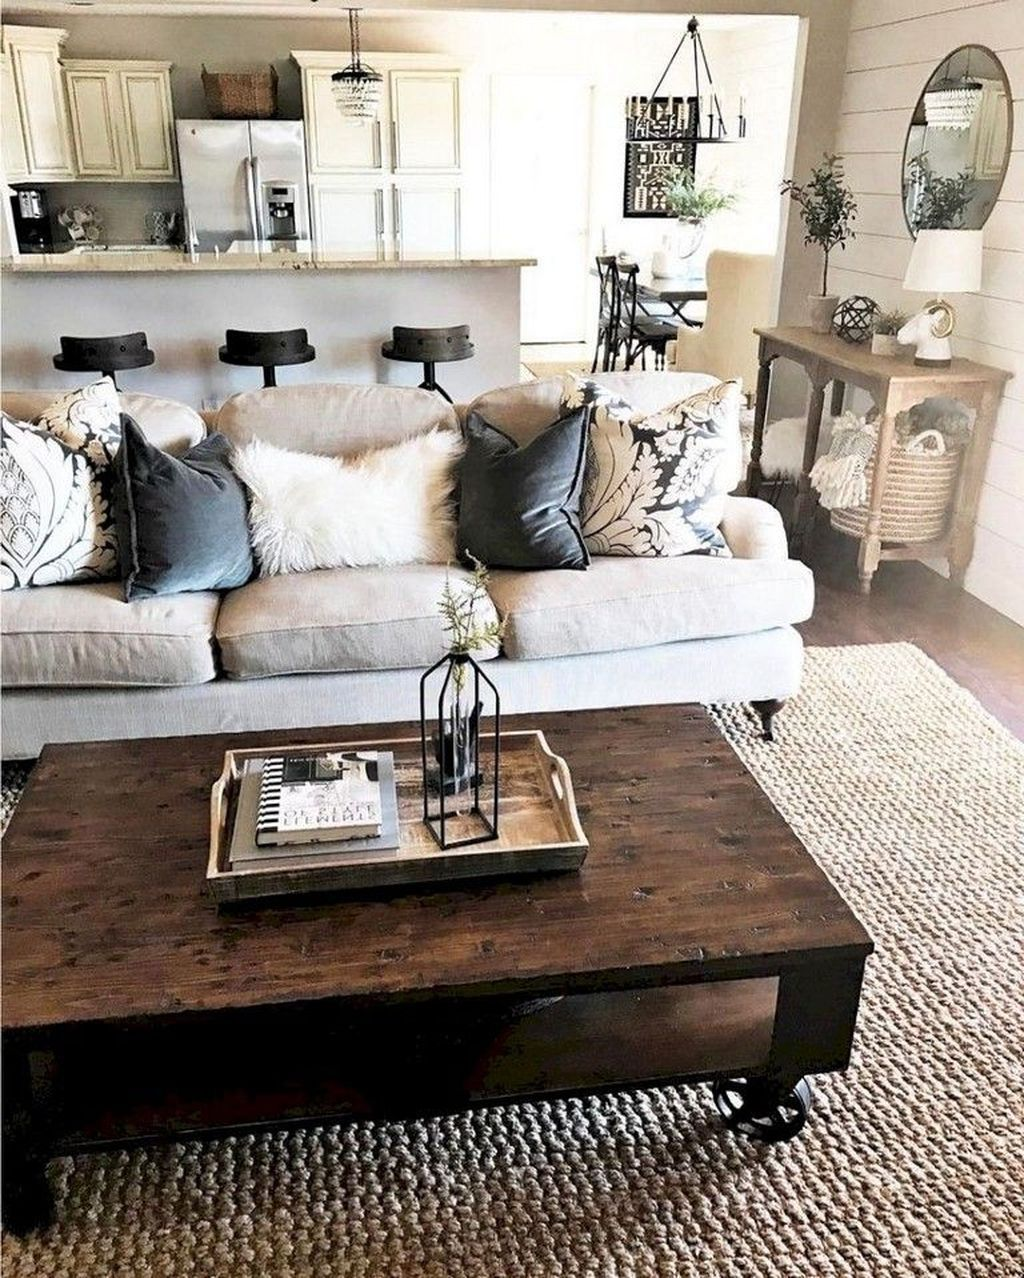 10 Modern Farmhouse Living Room Ideas: 35 Awesome Rustic Farmhouse Living Room Decor Ideas